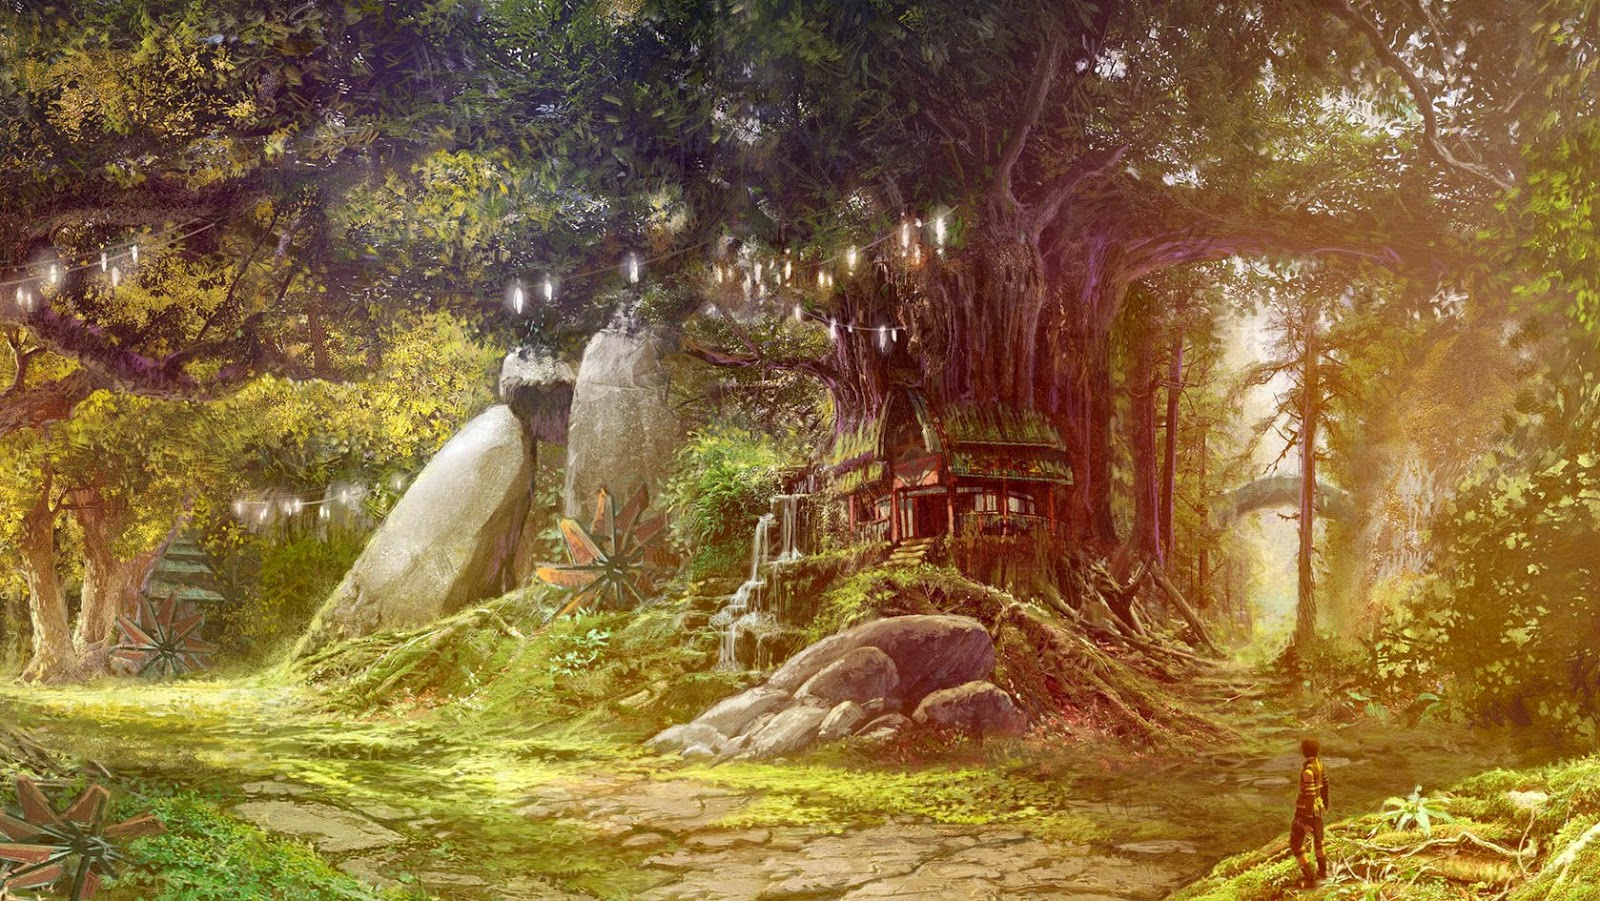 Fantasy-images-of-tree-houses-like-in-avatar-movie-world-graphics-picture.jpg